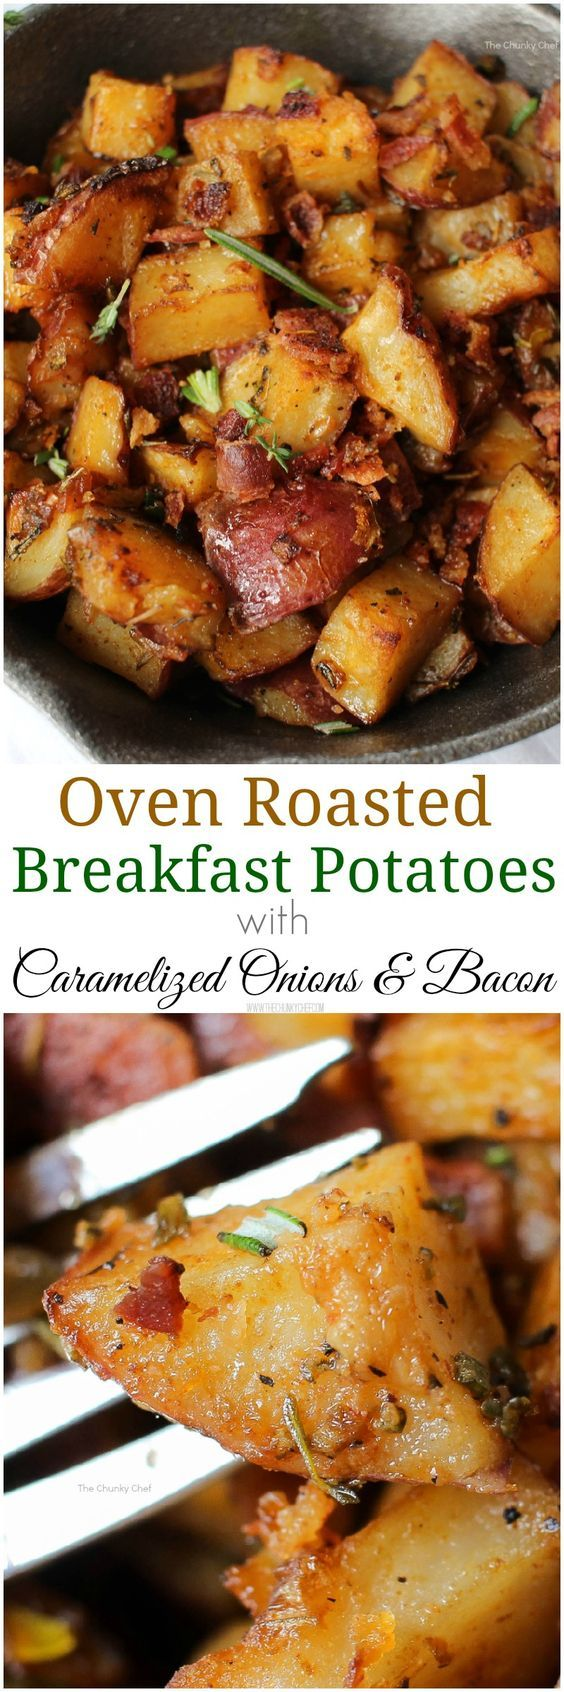 (49) Oven Roasted Breakfast Potatoes | Recipe